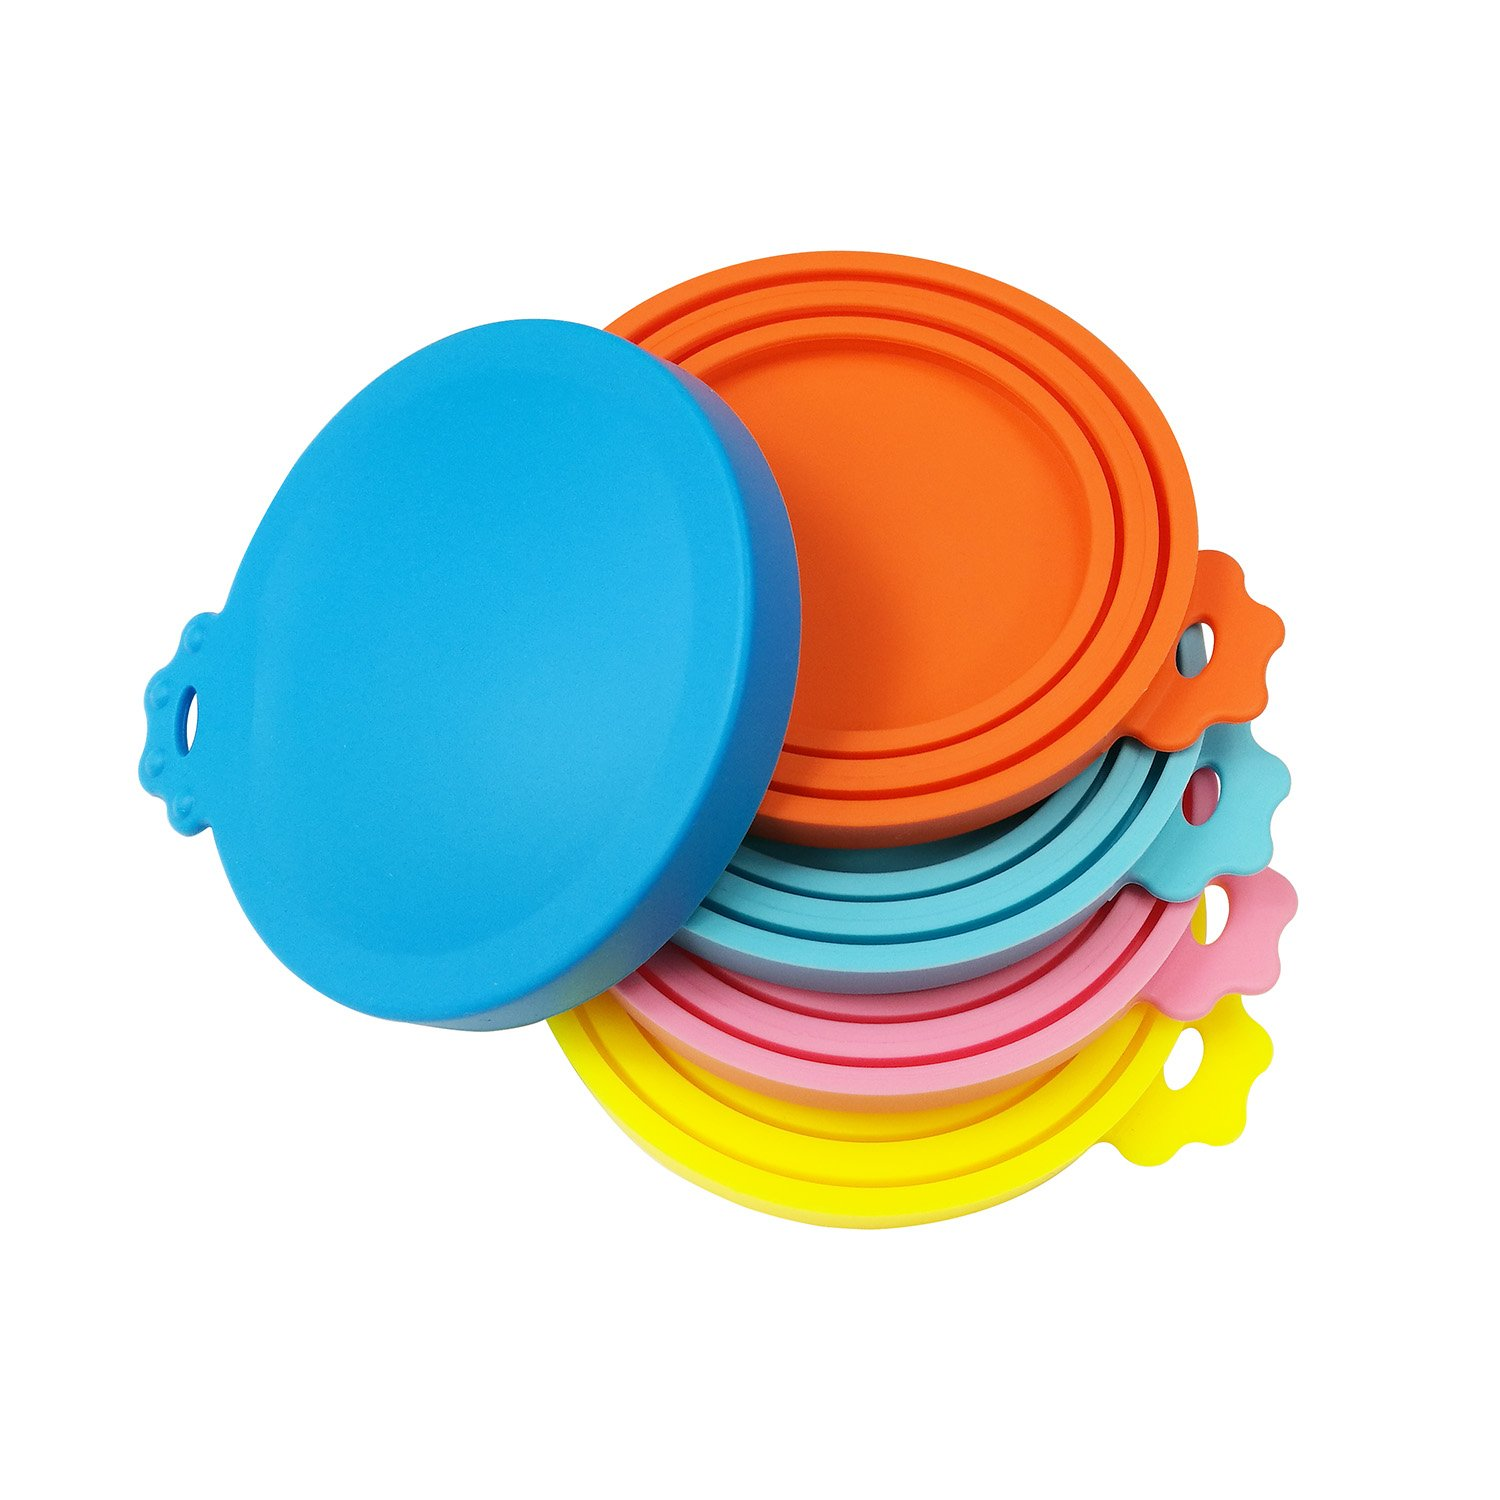 SACRONS Can Covers/5 Pack/Universal Silicone Can Lids for Pet Food Cans/Fits Most Standard Size Dog and Cat Can Tops/100% FDA Certified Food Grade Silicone & BPA Free